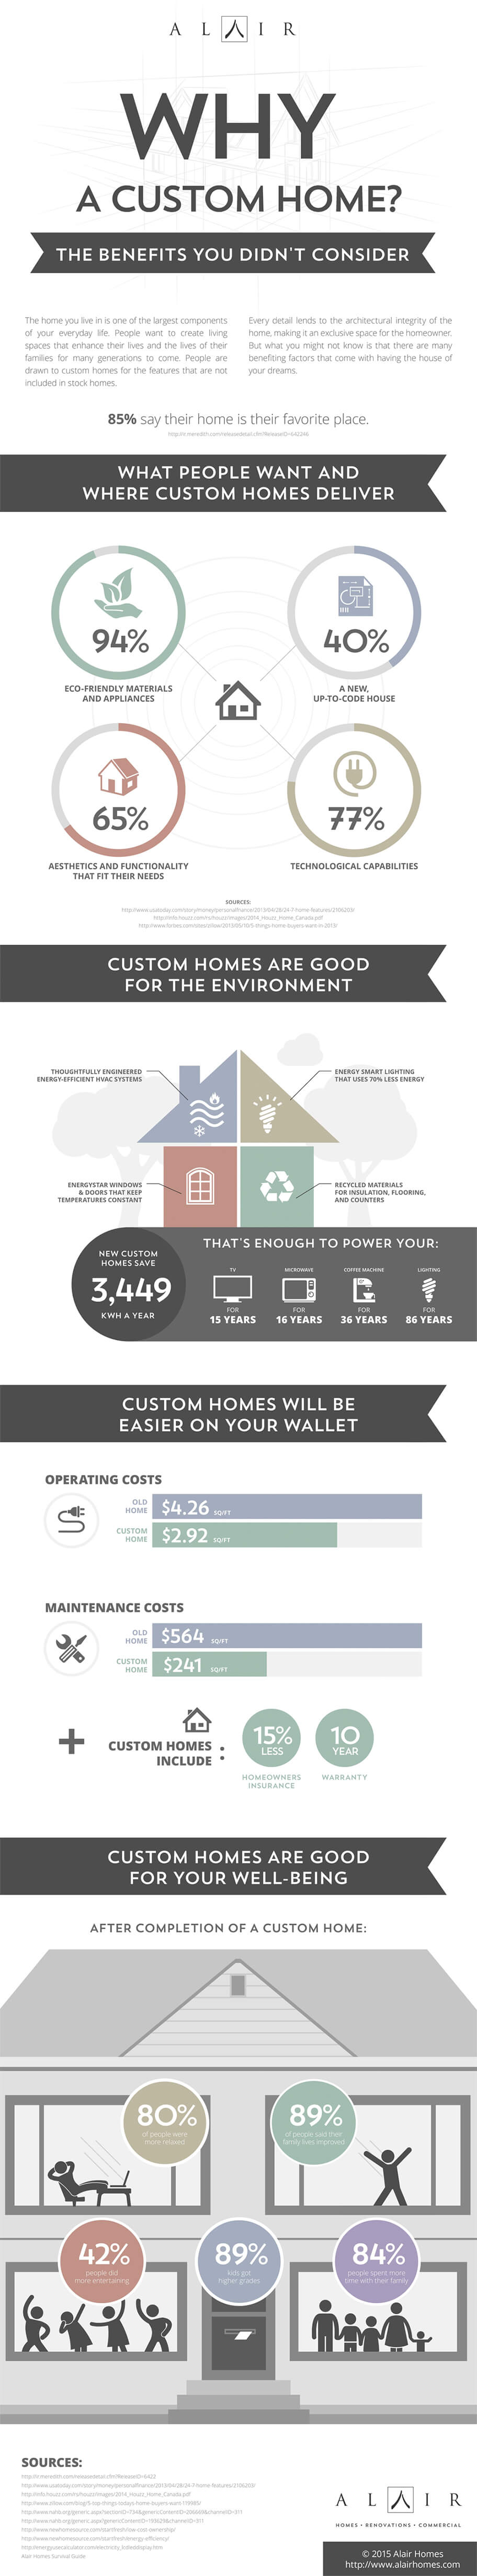 Why build a custom home infographic by Alair Homes